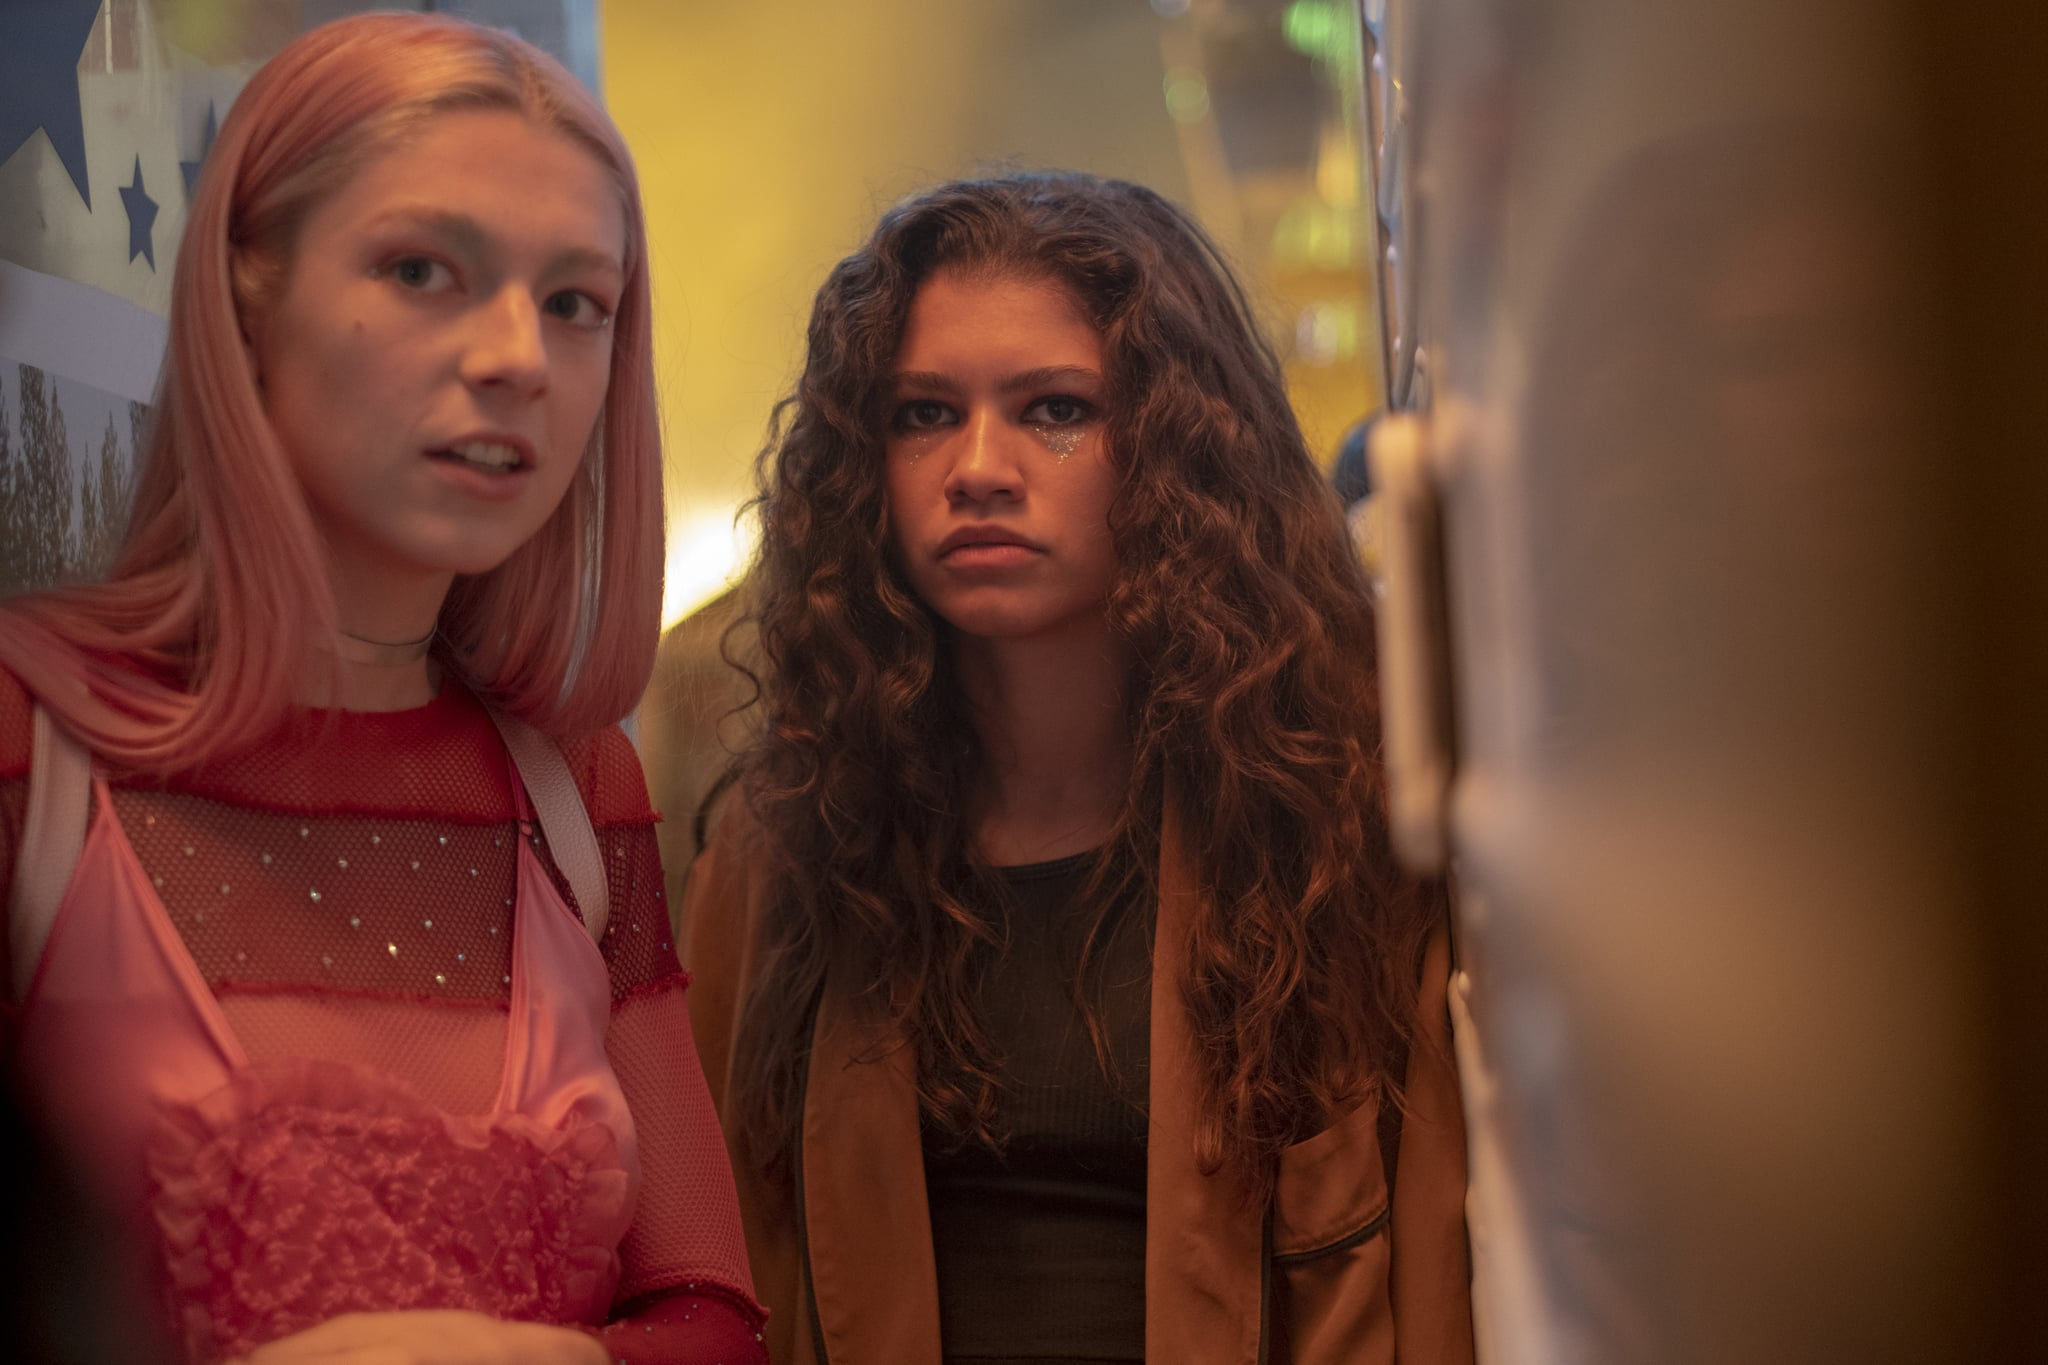 HBO's Euphoria Has Forced Me to Take a Harsh Look at the Choices I Made in High School